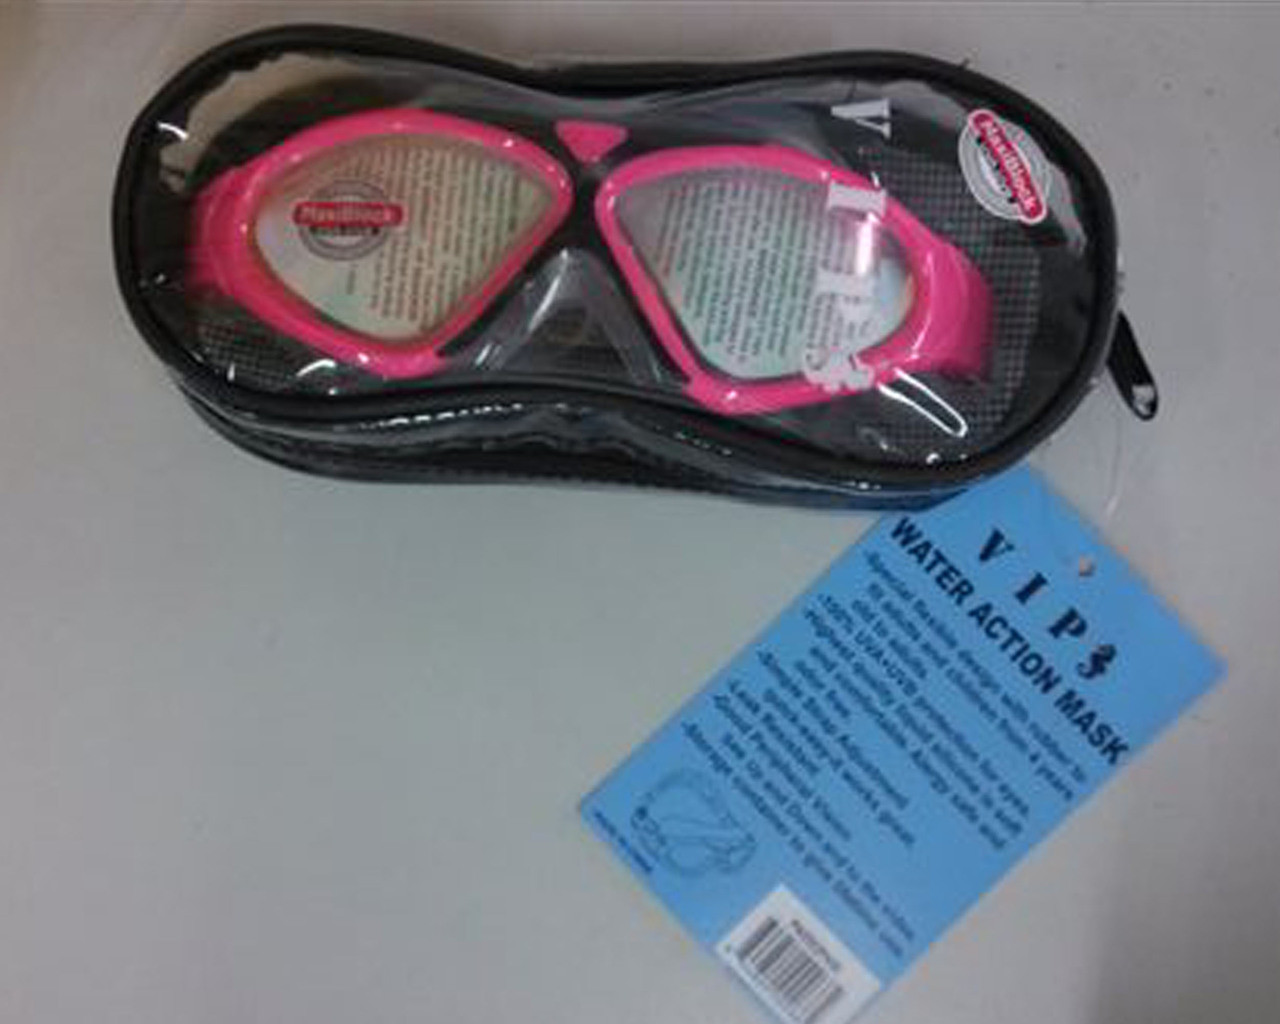 Water Action Mask / Goggles